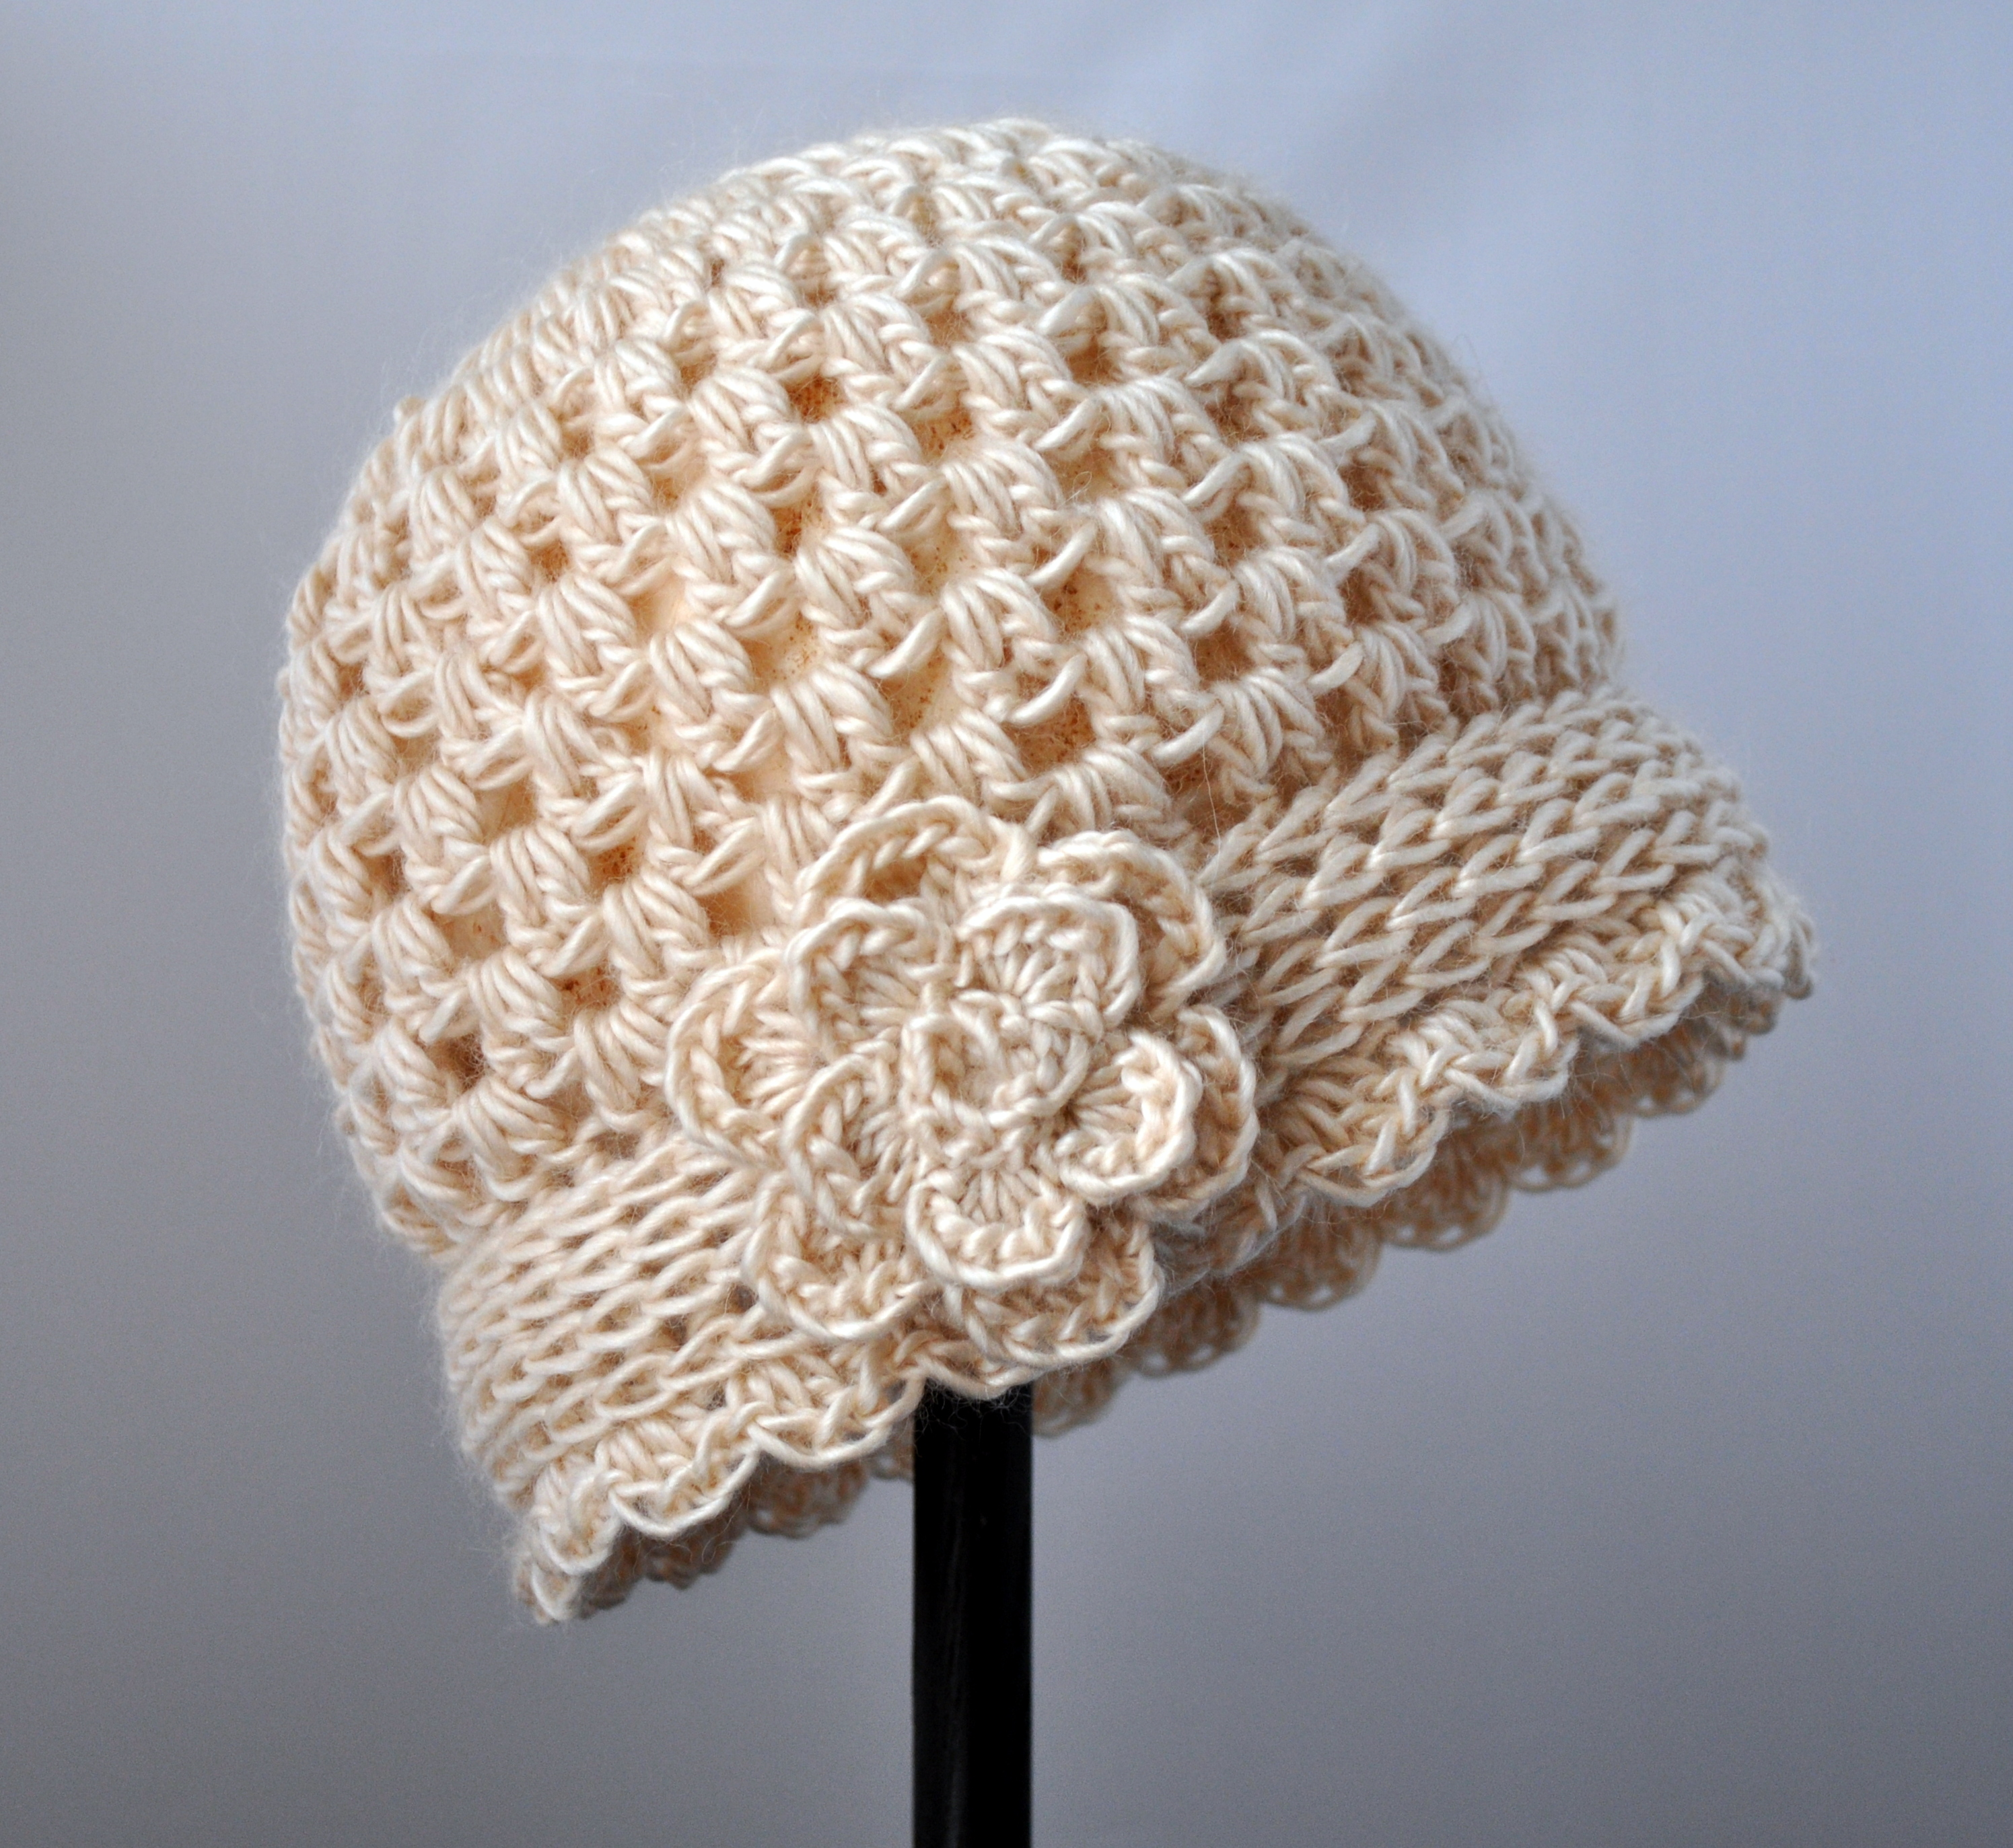 Crochet Hat Patterns : Crochet Vintage Flowered Cloche Pattern Classy Crochet